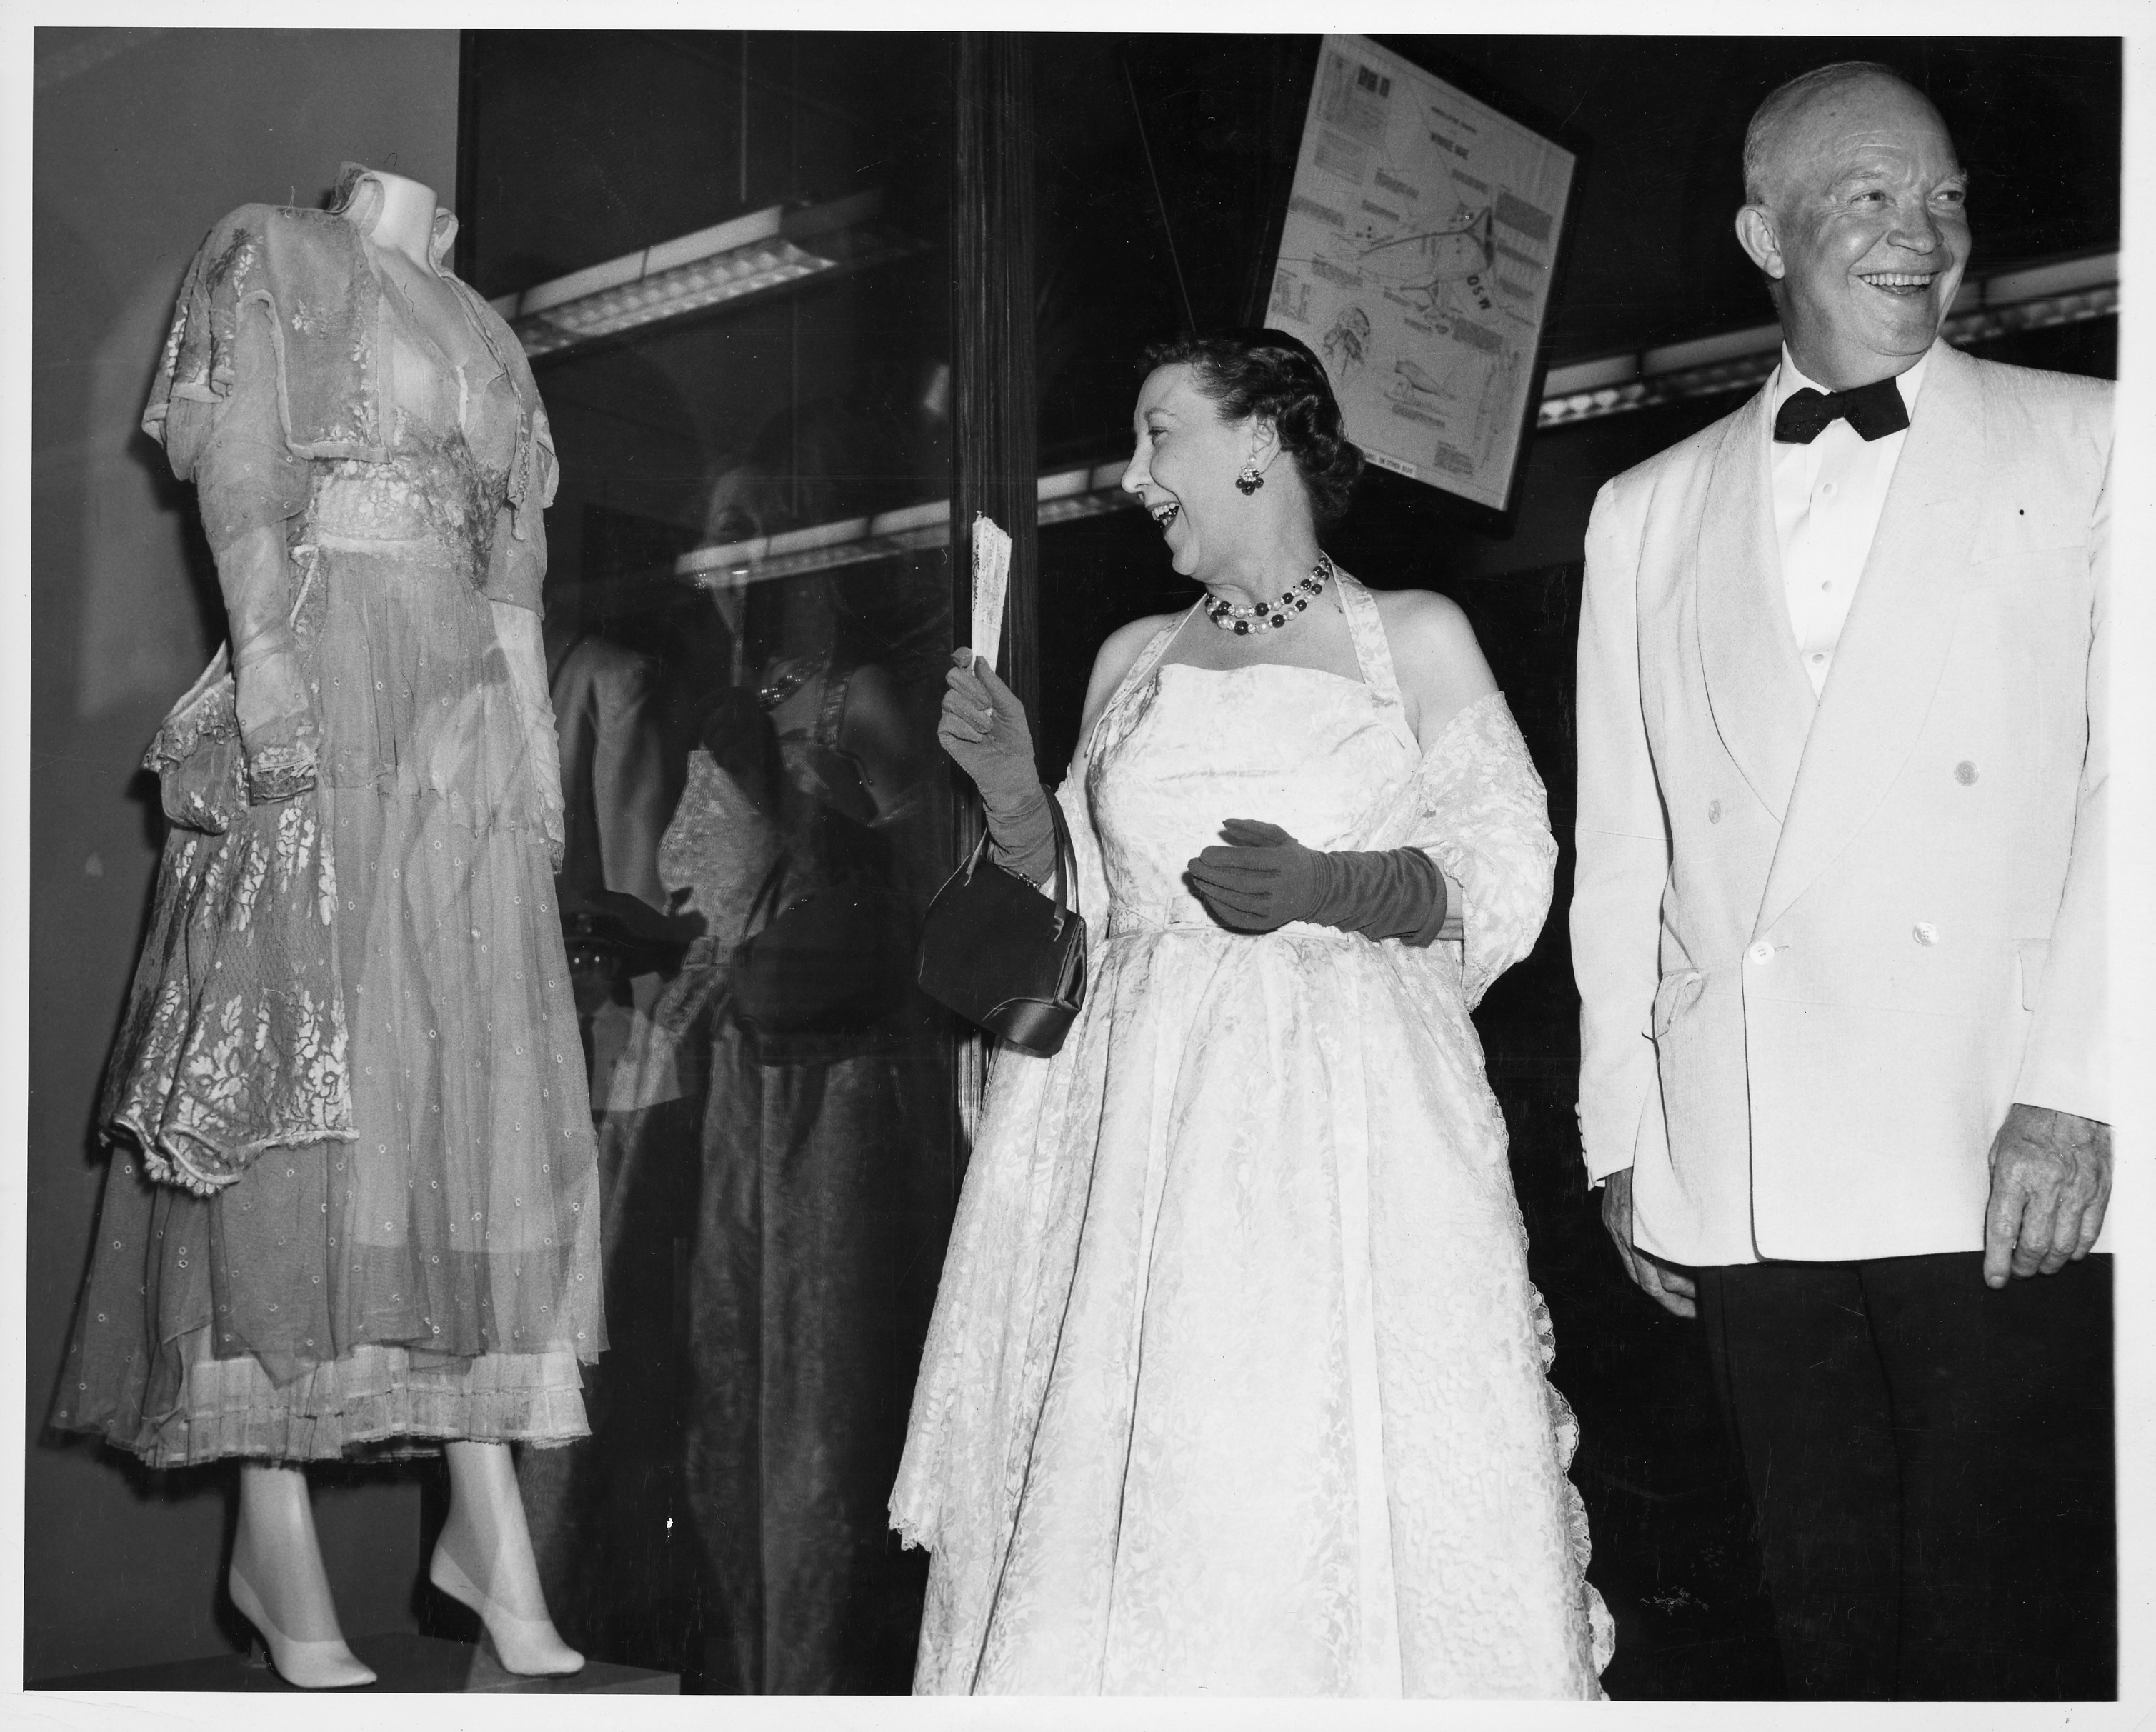 The Eisenhowers stand in front of a gown on exhibit. Both are smiling broadly.